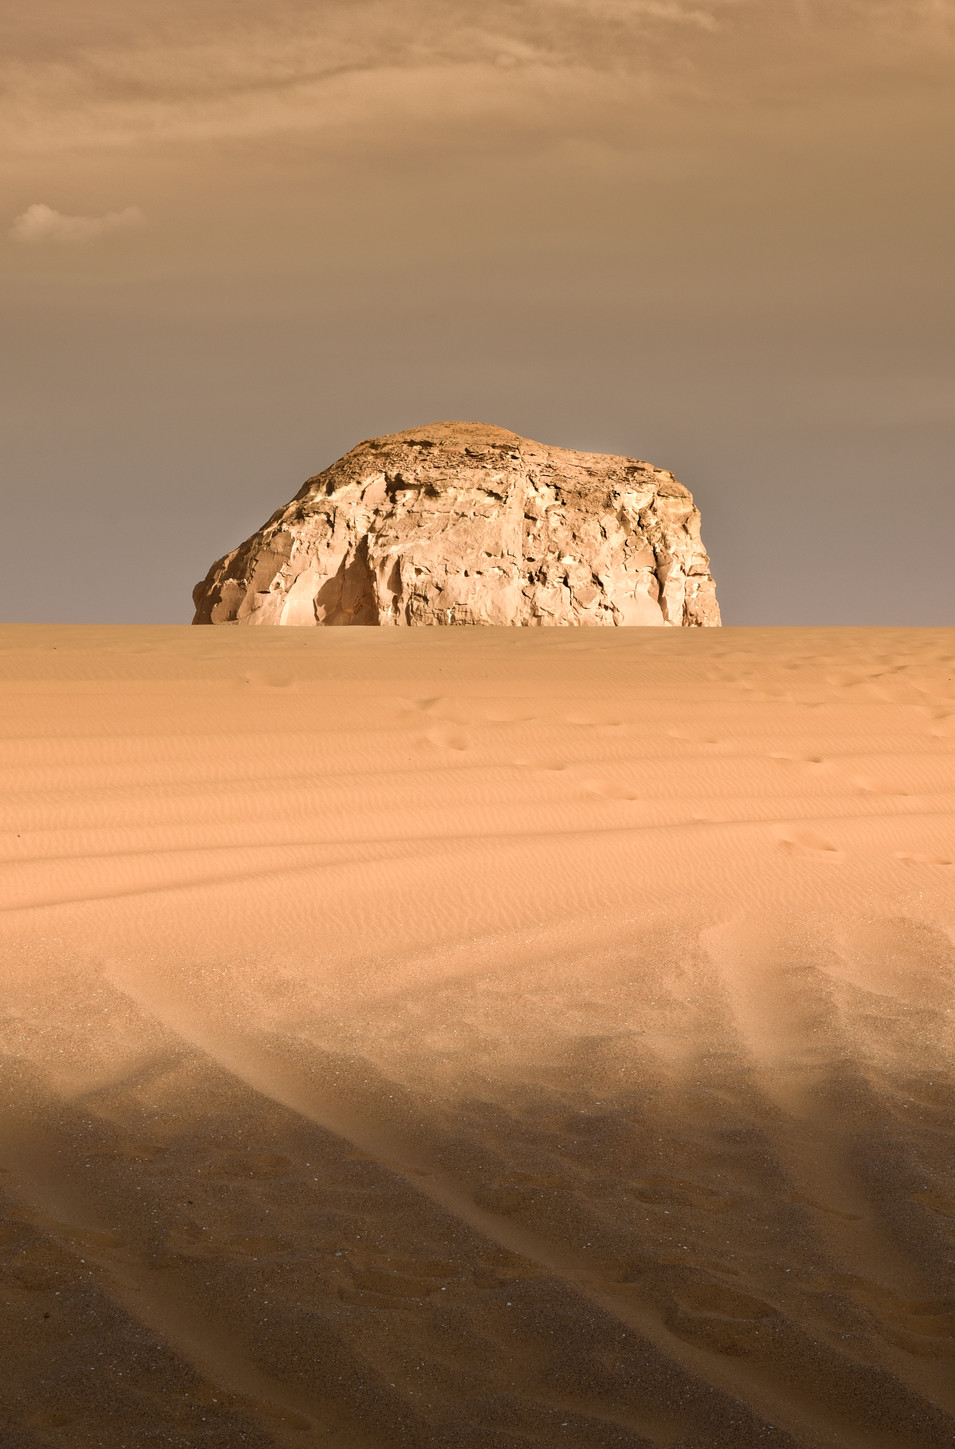 LONELY ROCK